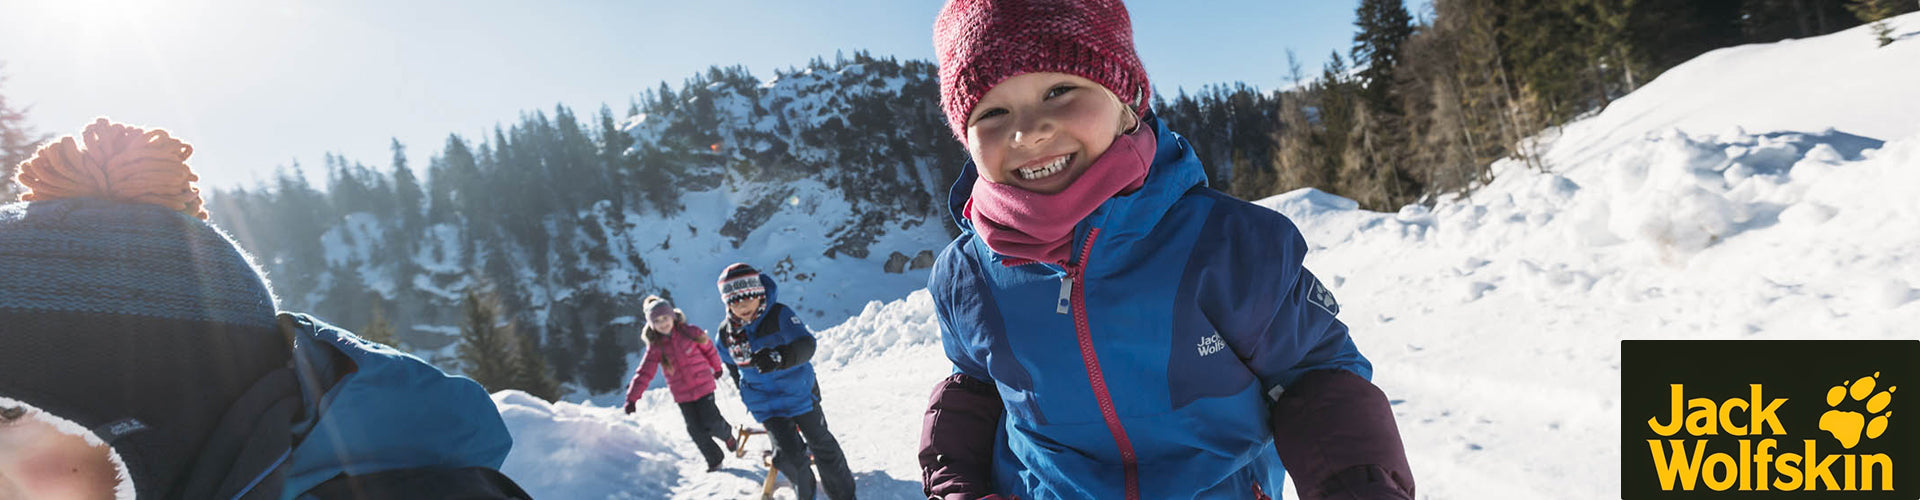 Jack Wolfskin Kids Clothing